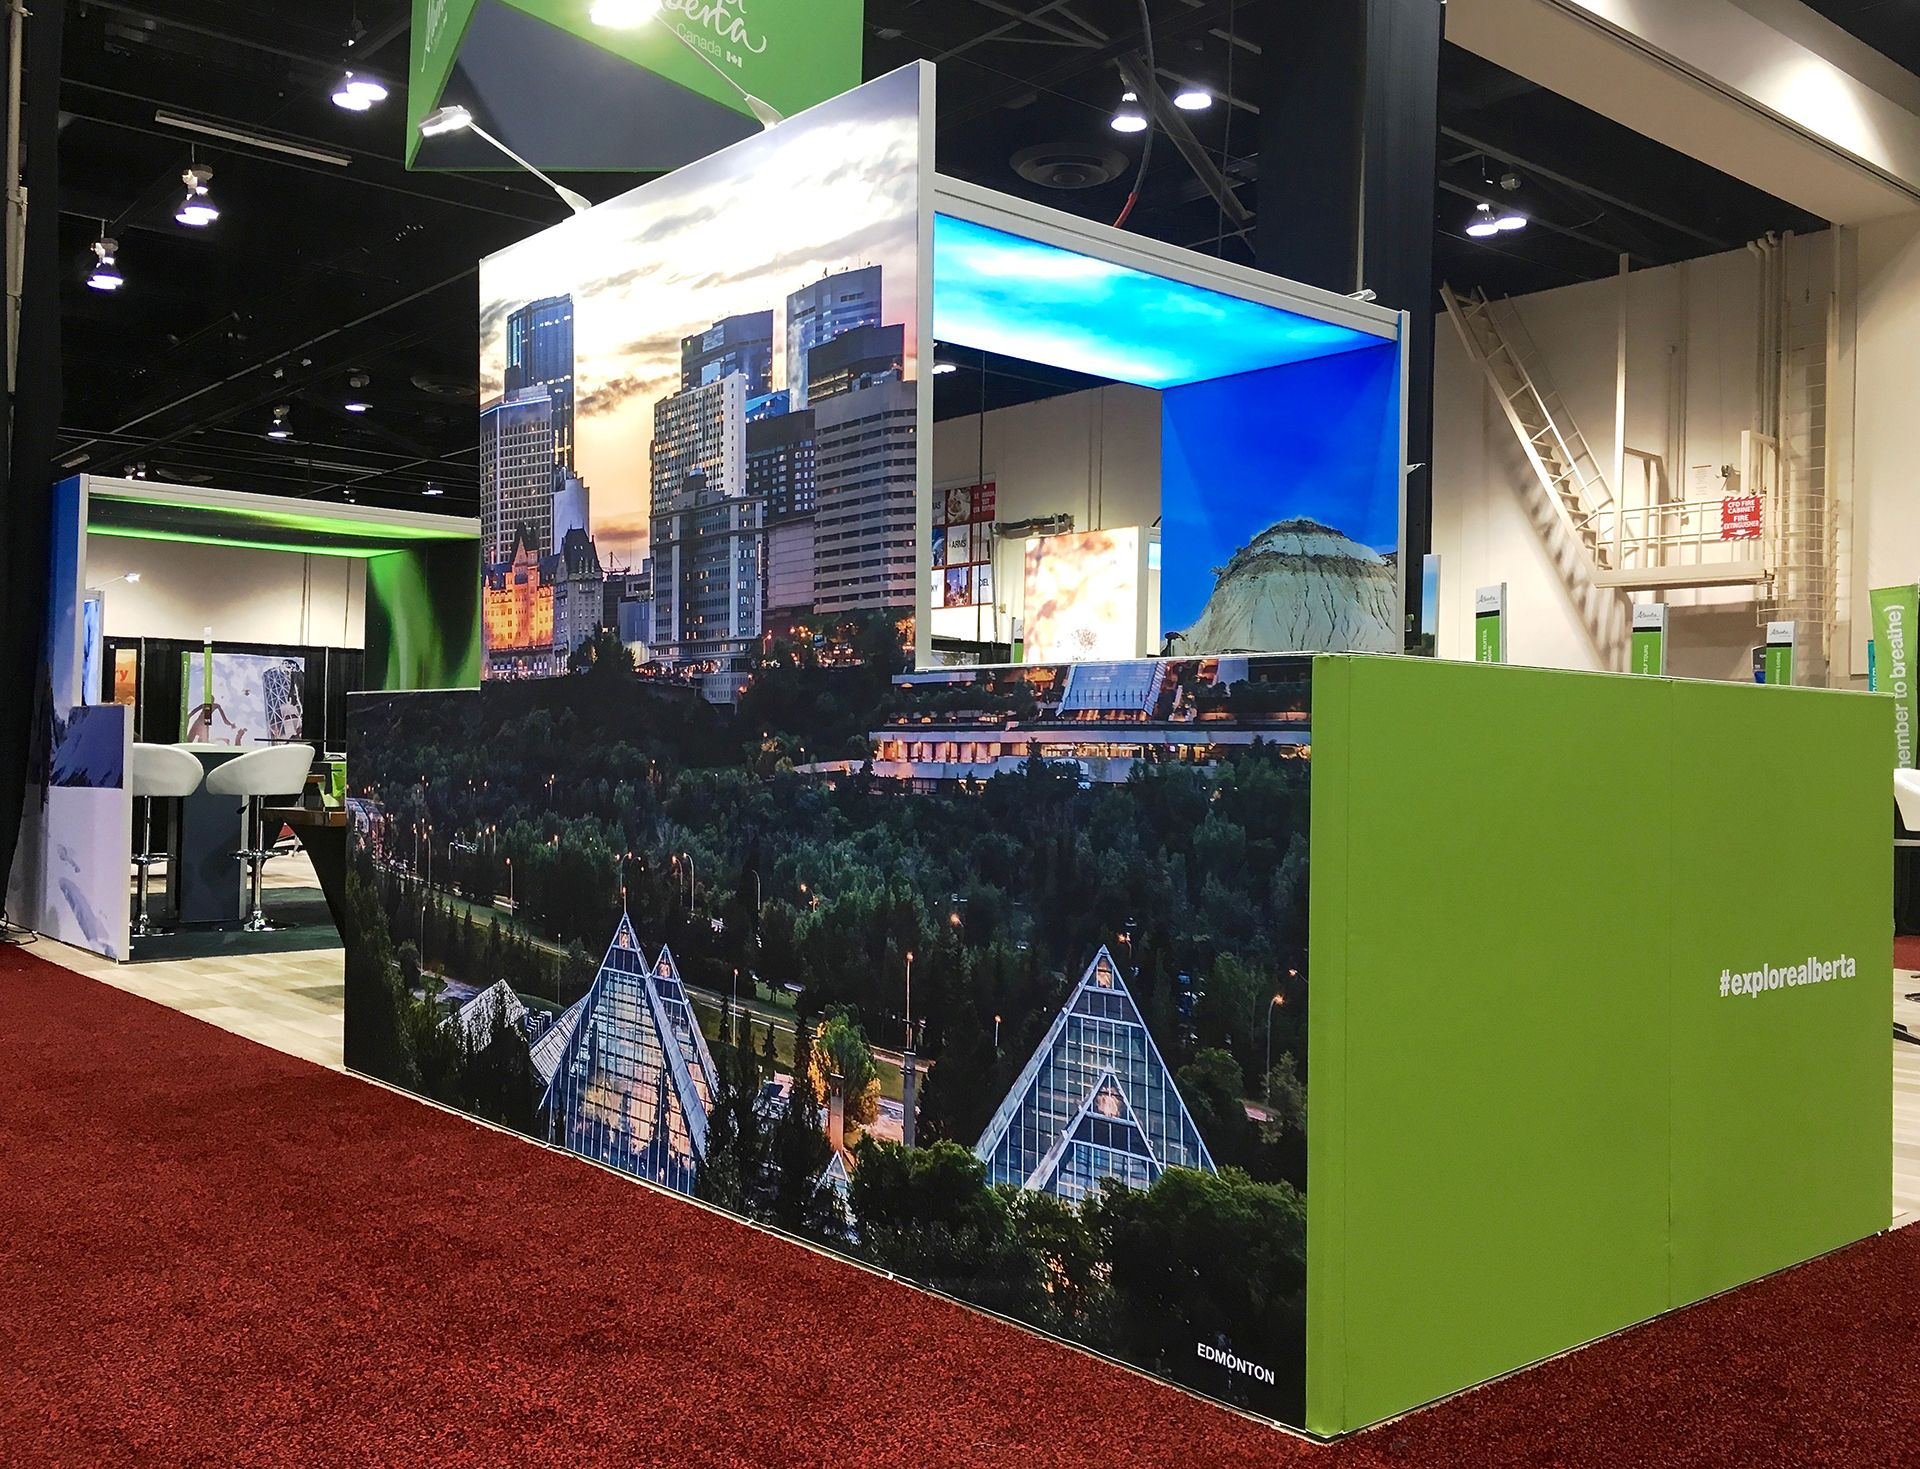 Modular Exhibition Stands Questions : Modern modular exhibition booth design ideas welcome to contact